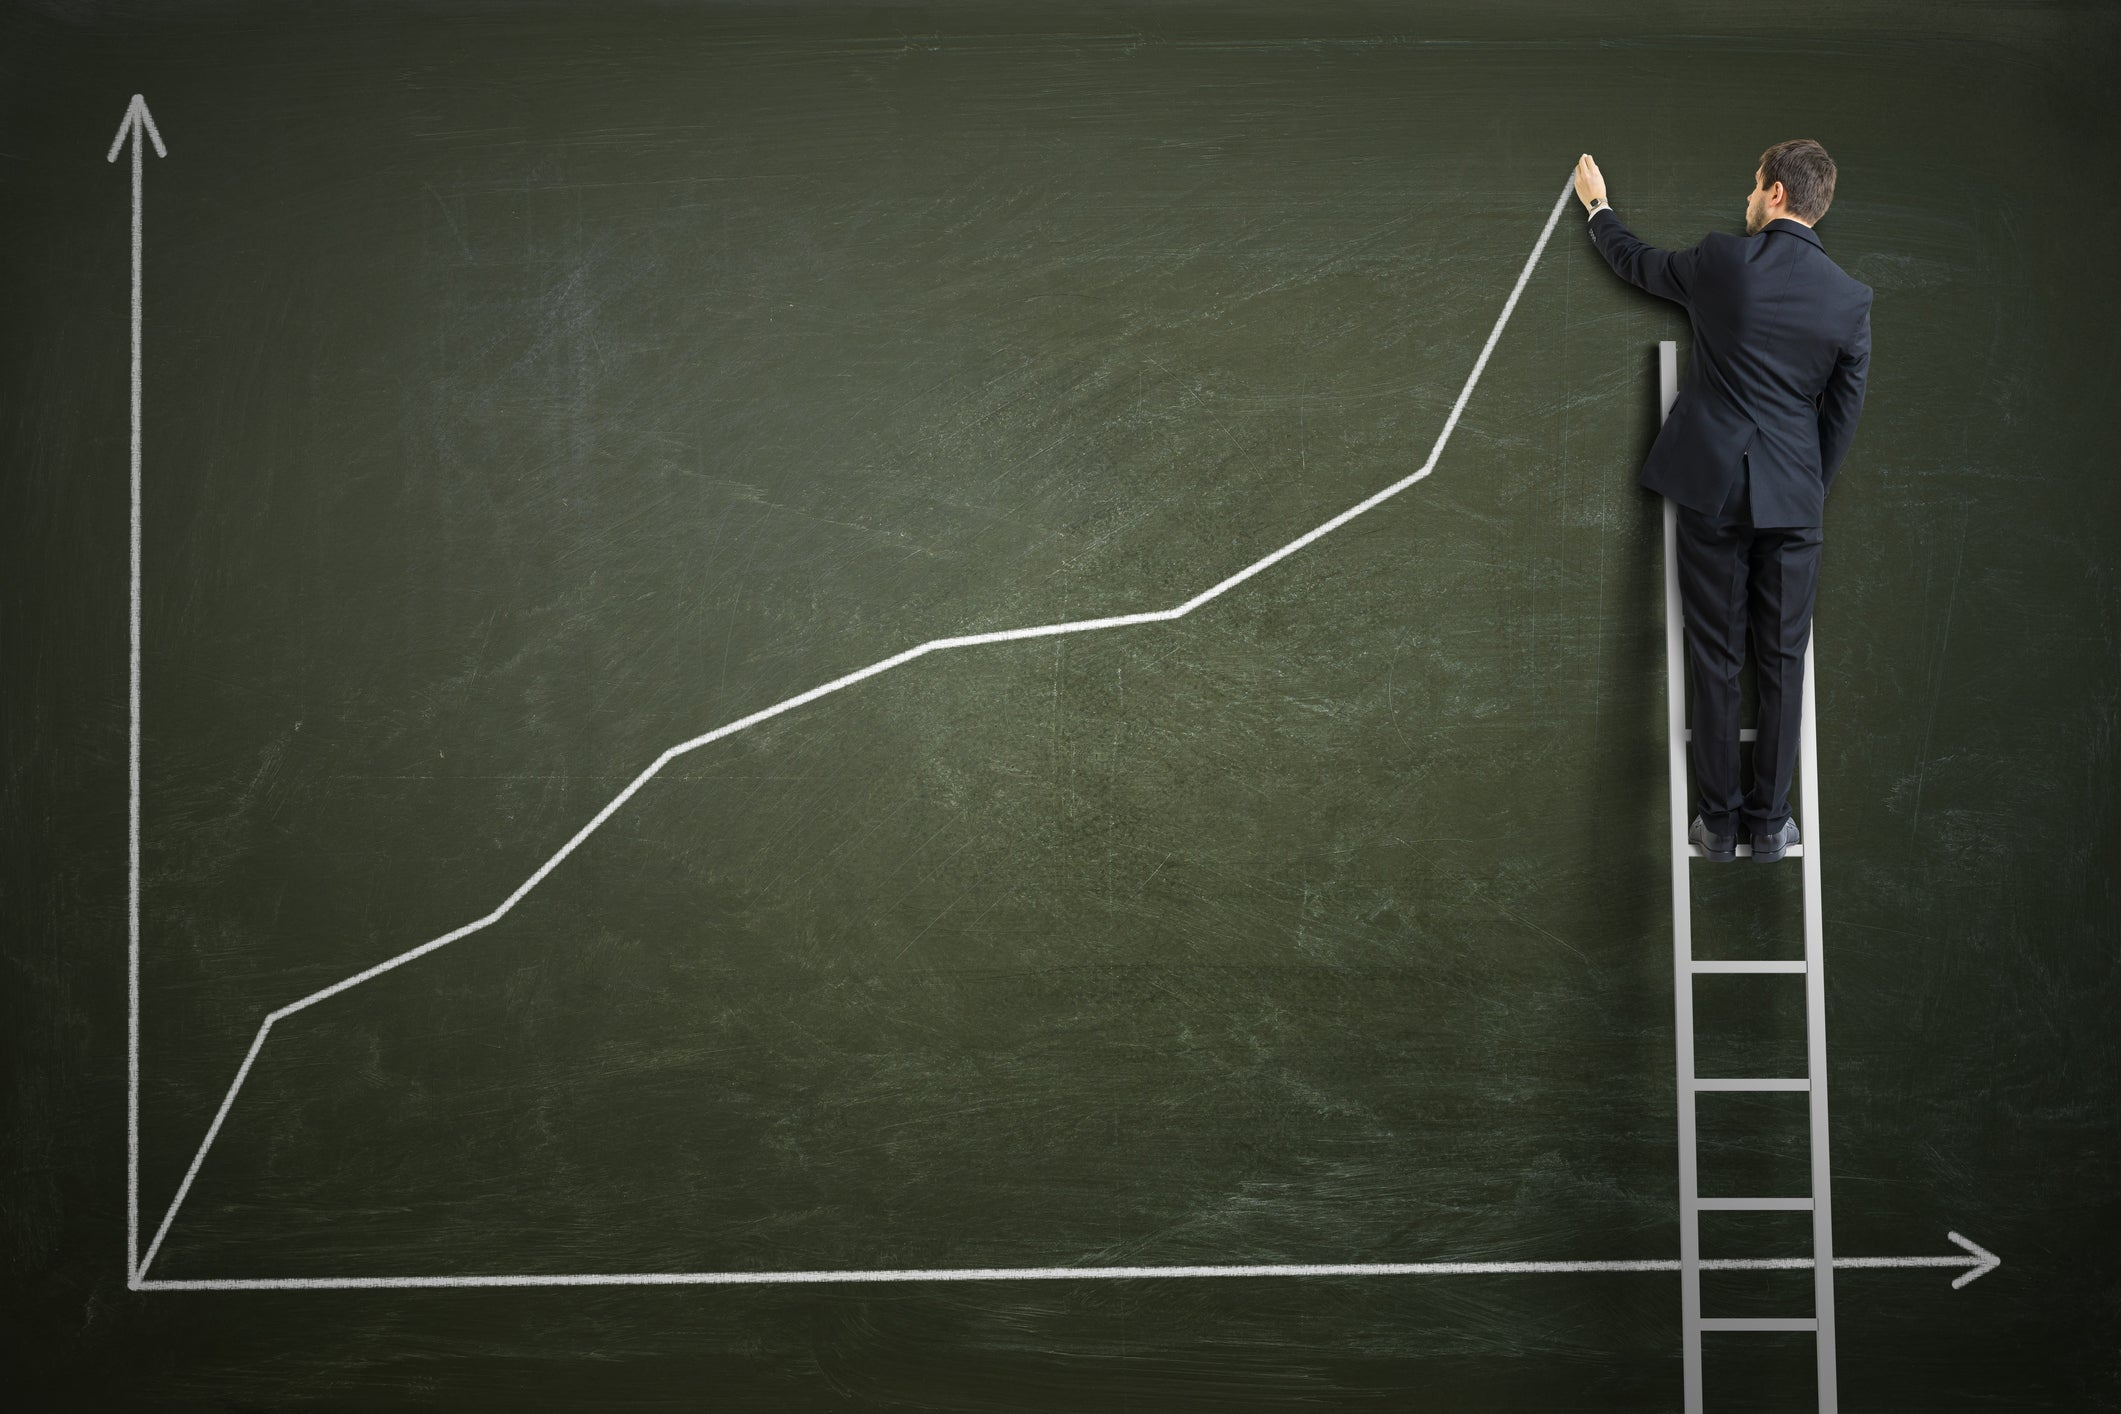 A businessman draws a rising stock chart on a blackboard.